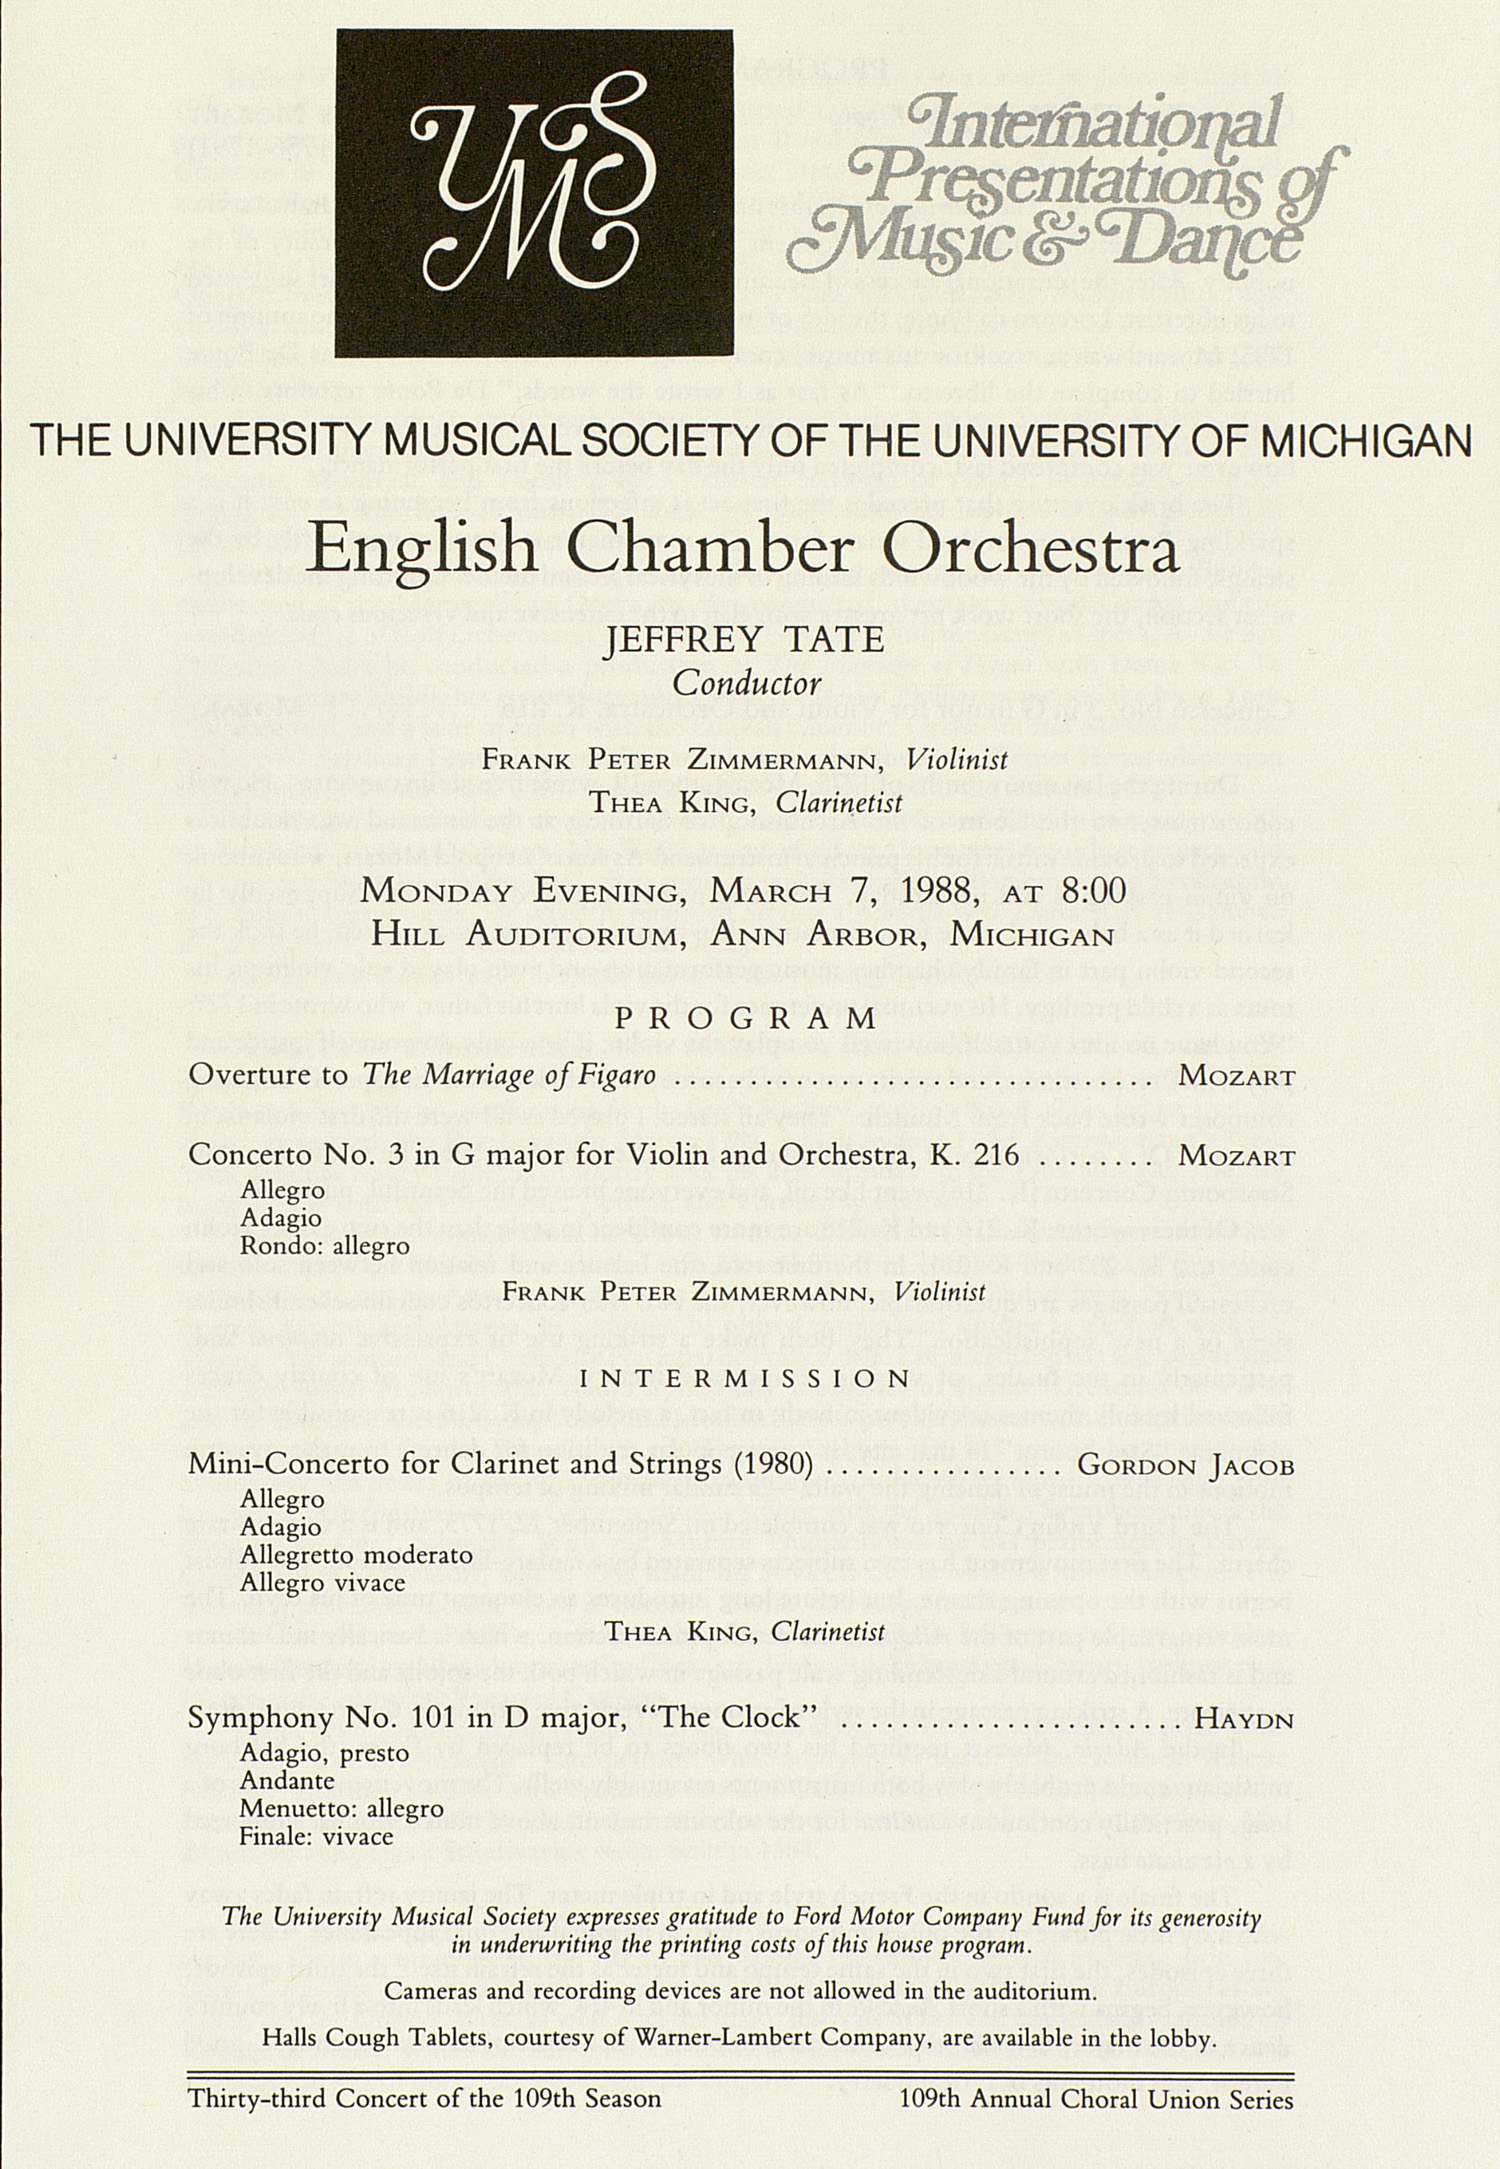 UMS Concert Program, March 7, 1988: International Presentations Of Music & Dance -- English Chamber Orchestra image